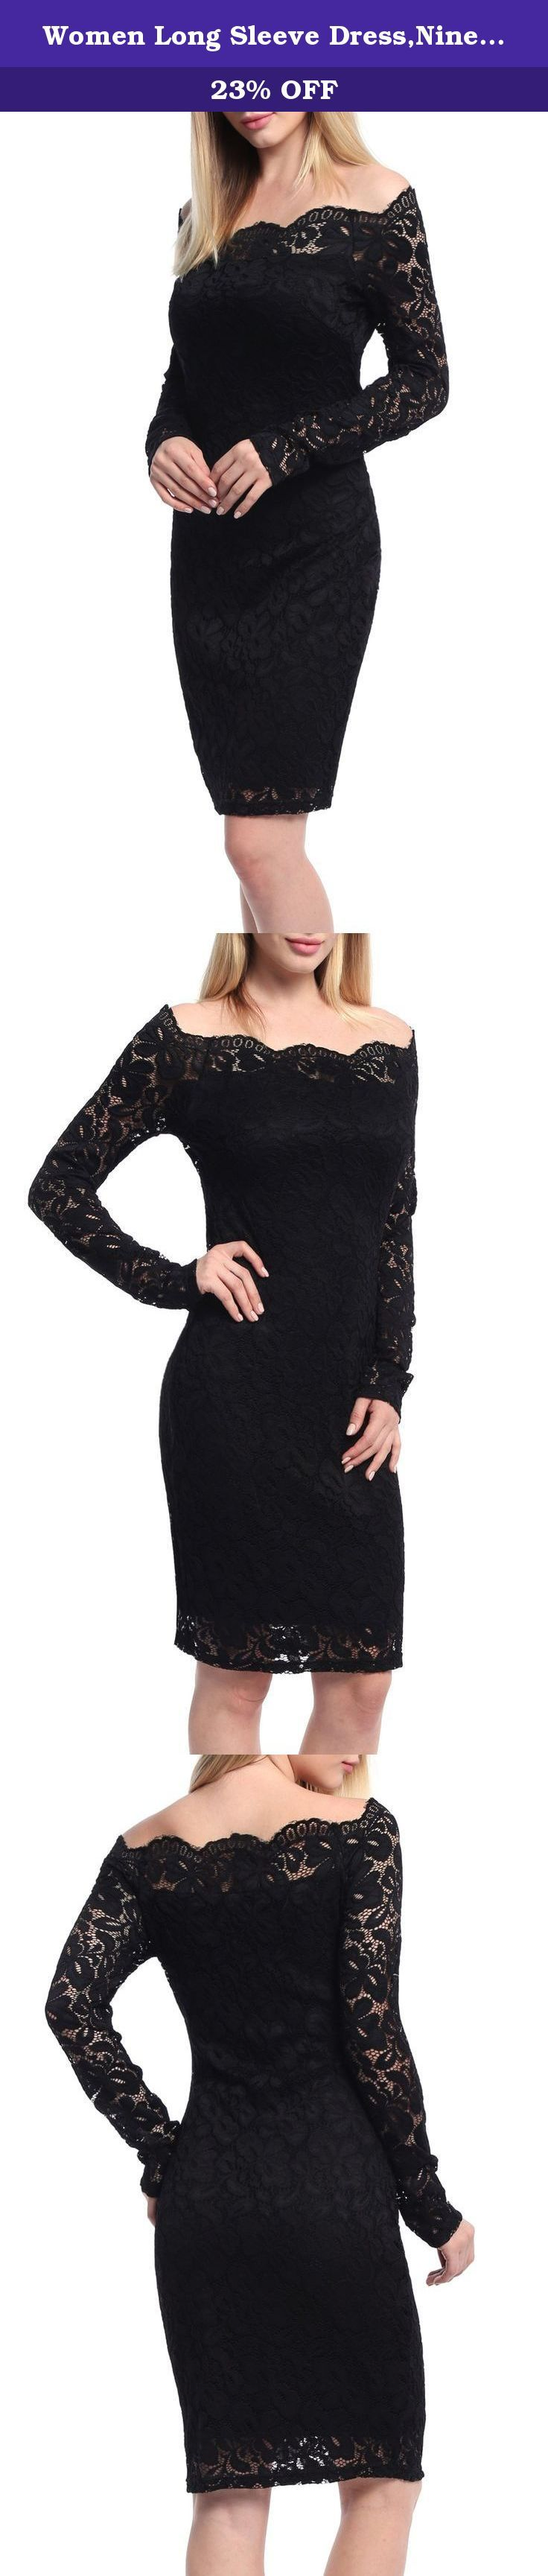 Women Long Sleeve Dress,Ninedaily Sheath Fashion Bodycon Empire Waist Black XL. 1.About us: We own a large women clothing factory and sales all kinds of women clothing. All products made in our own manufacturer through an emphasis on quality and customer service. 2.About Product: a. Features: Scalloped Neck, Full Lace, Floral Print, Frill Collar, Empire Waist, Over Knee, Pencil Skirt, Bodycon Dress b. Occasion: This is a great dress to wear to work, evening out, parties, prom and…